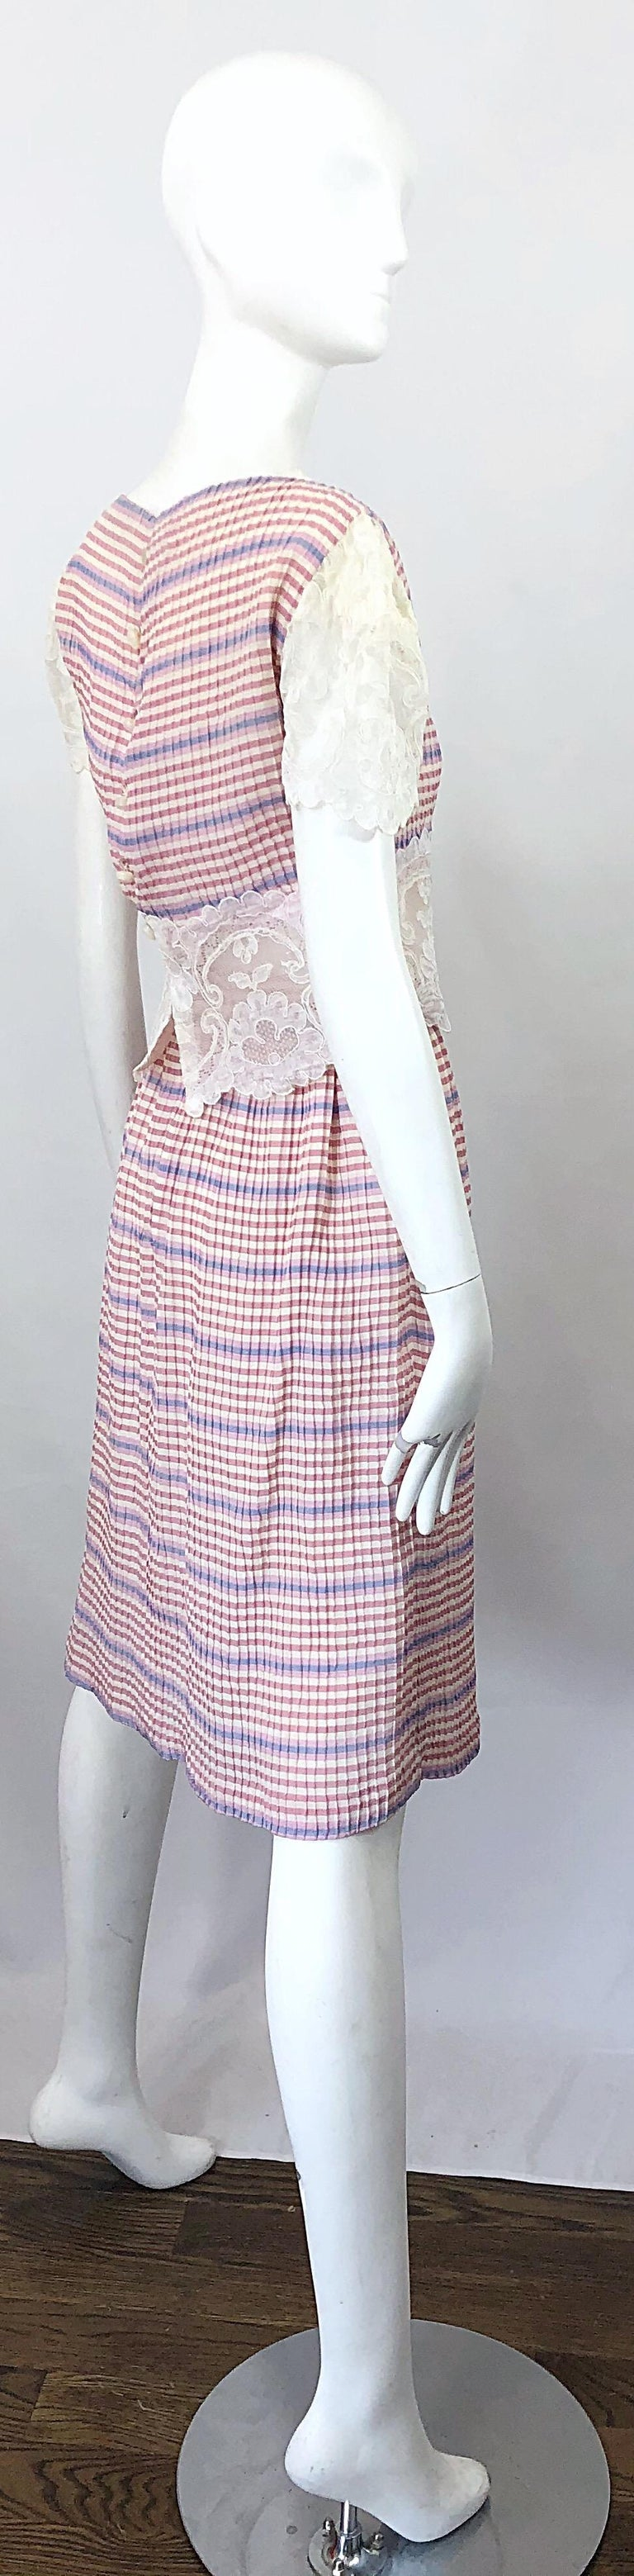 Women's Bob Mackie 1970s Stripes Size 4 Silk + Lace Vintage 70s Crop Top and Skirt Dress For Sale